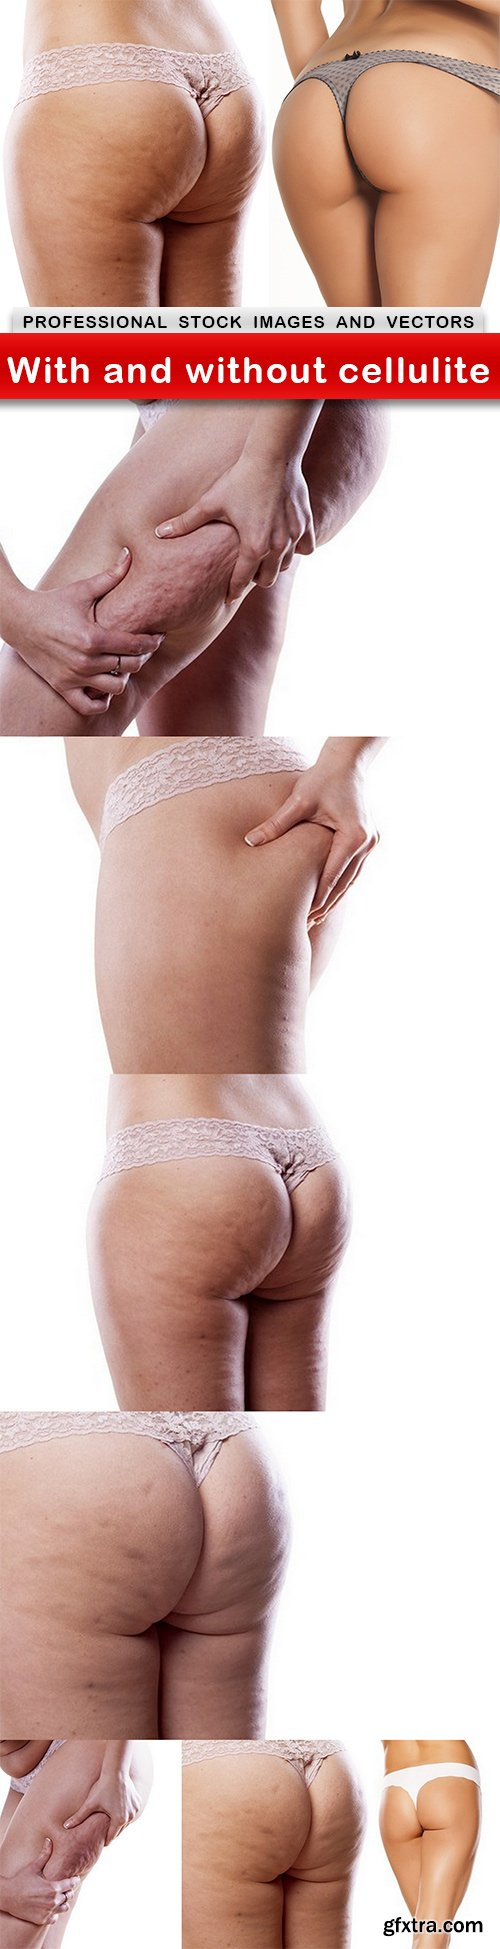 With and without cellulite - 7 UHQ JPEG